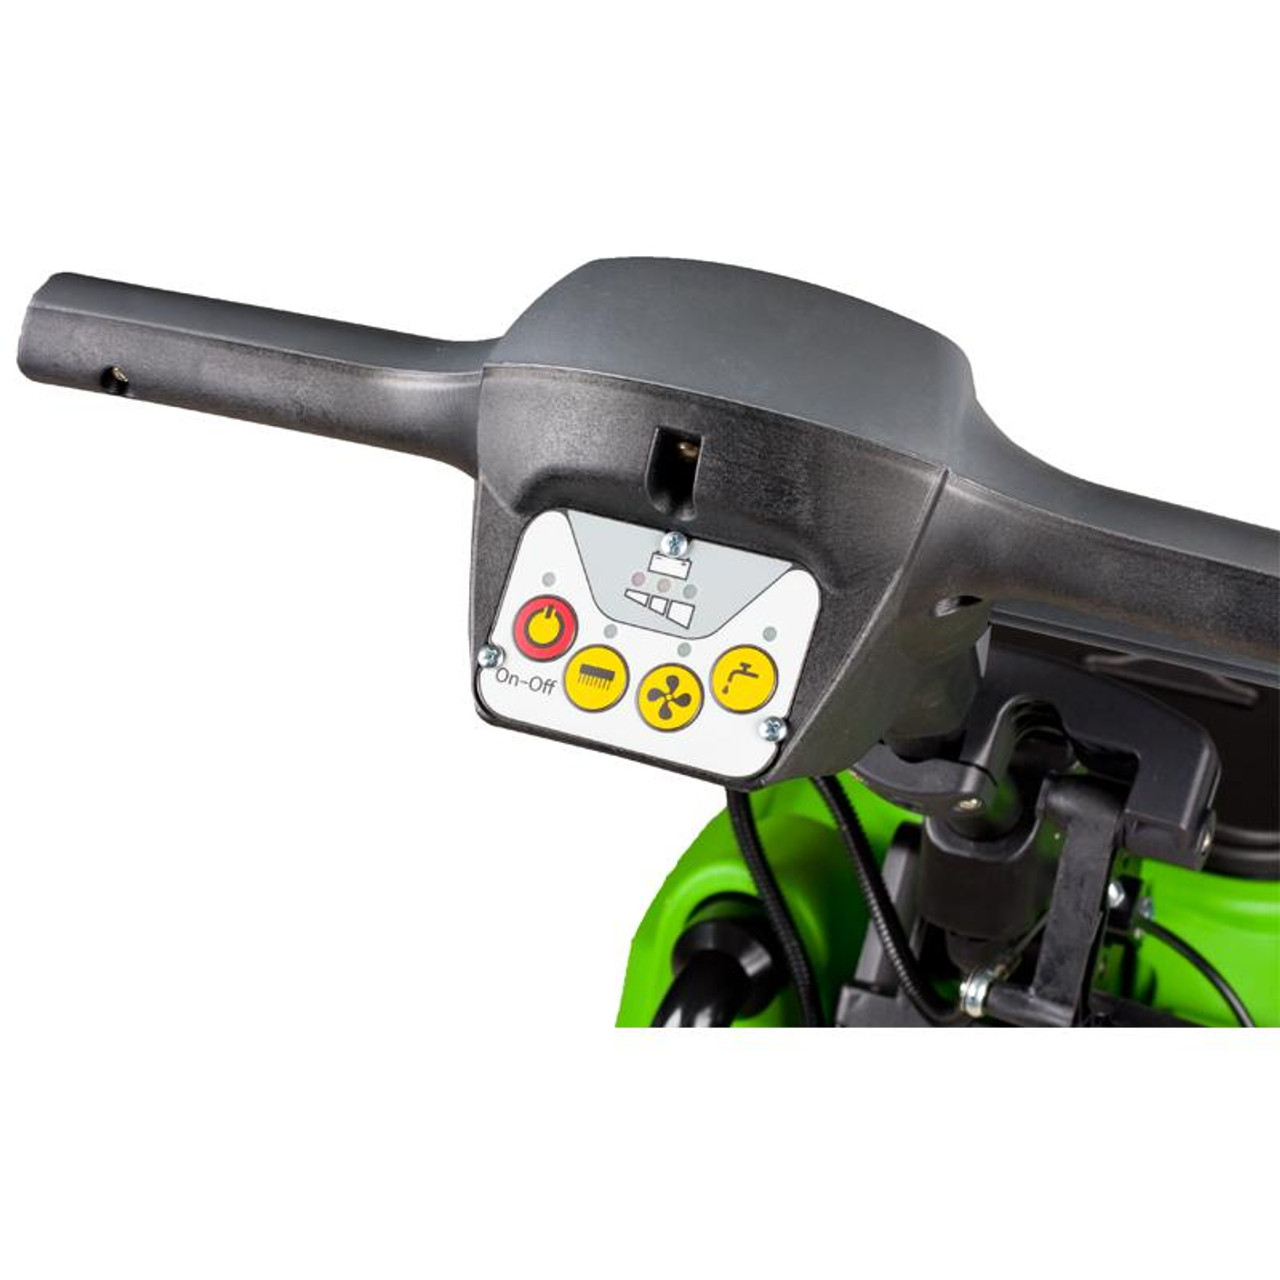 The CT30 Autoscrubber has simple controls built into the handle.